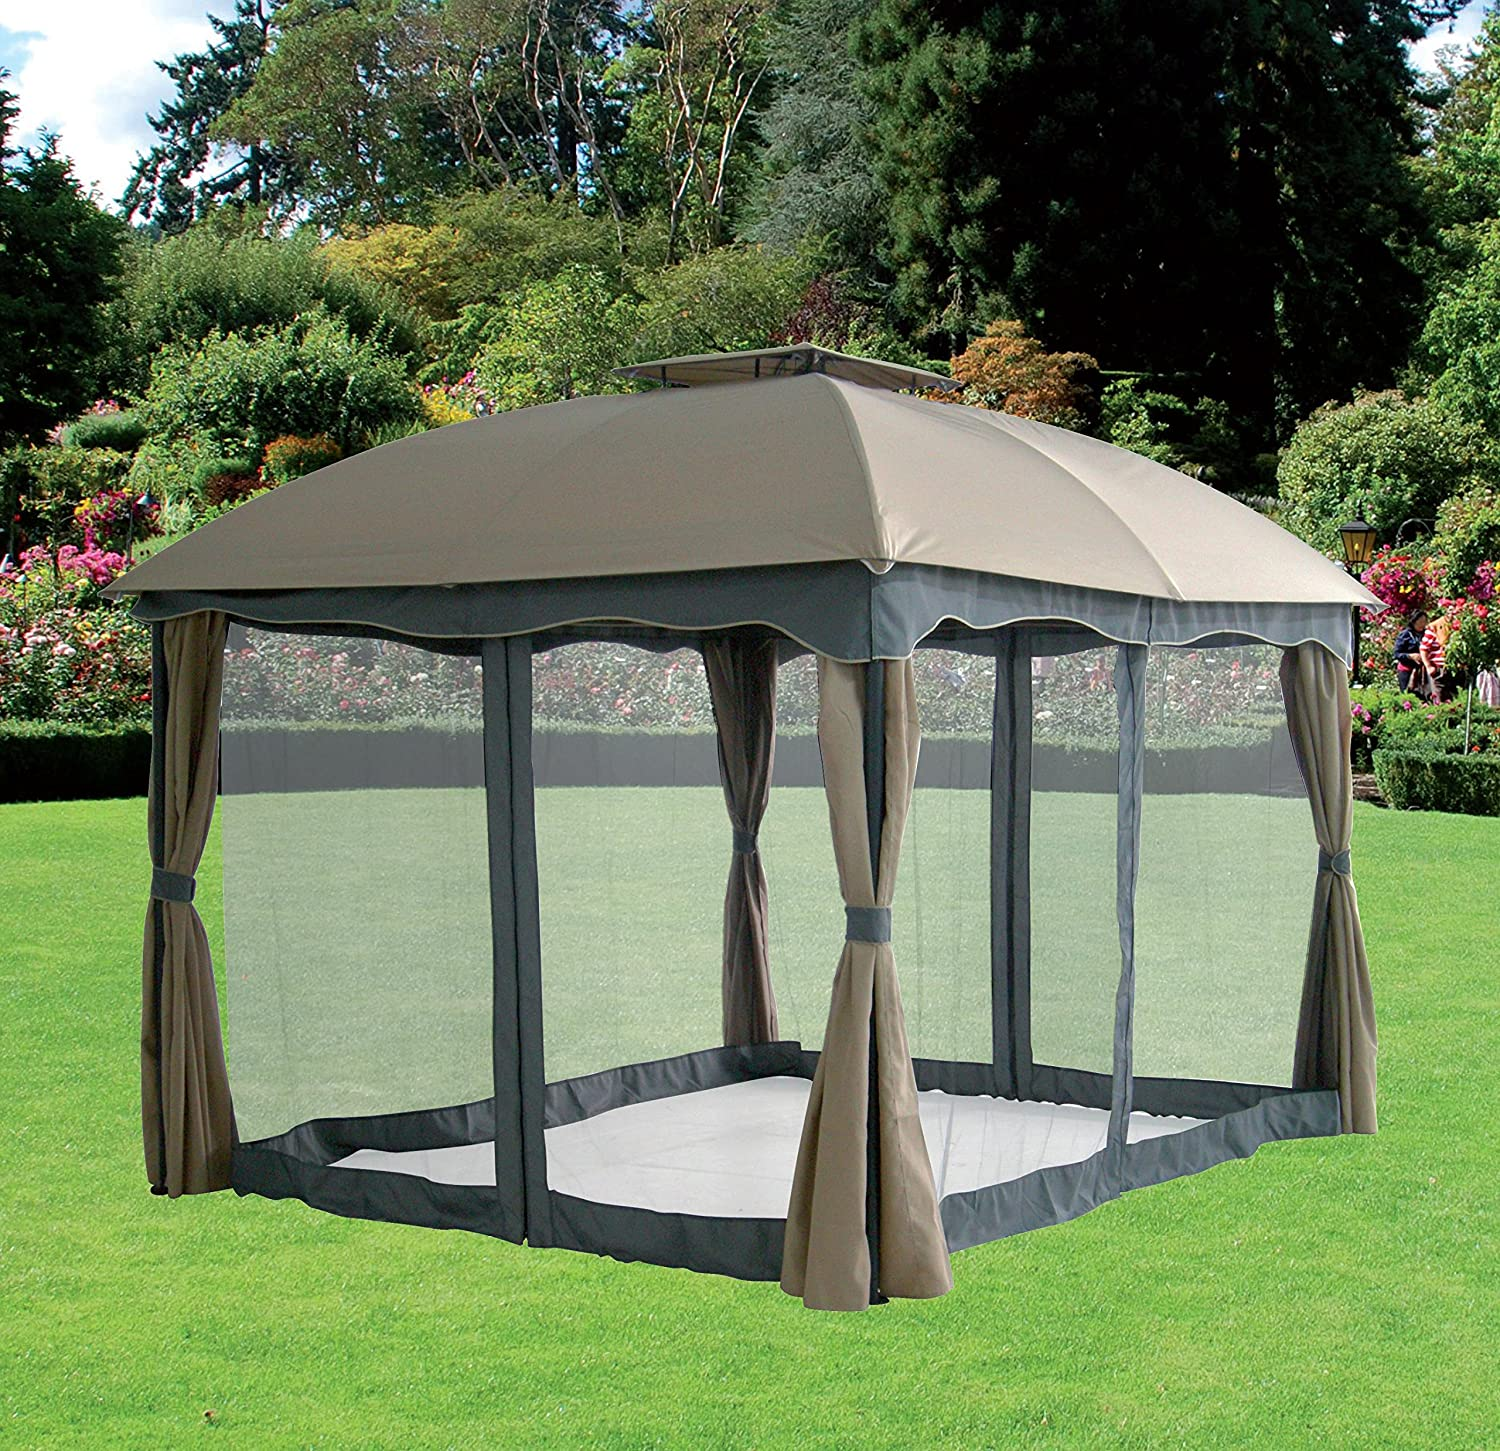 GAZEBO MOD. SIDNEY CON CORTINAS Y PANTALLAS ANTIINSECTOS MT. 3 X 3, COLOR BEIGE: Amazon.es: Hogar